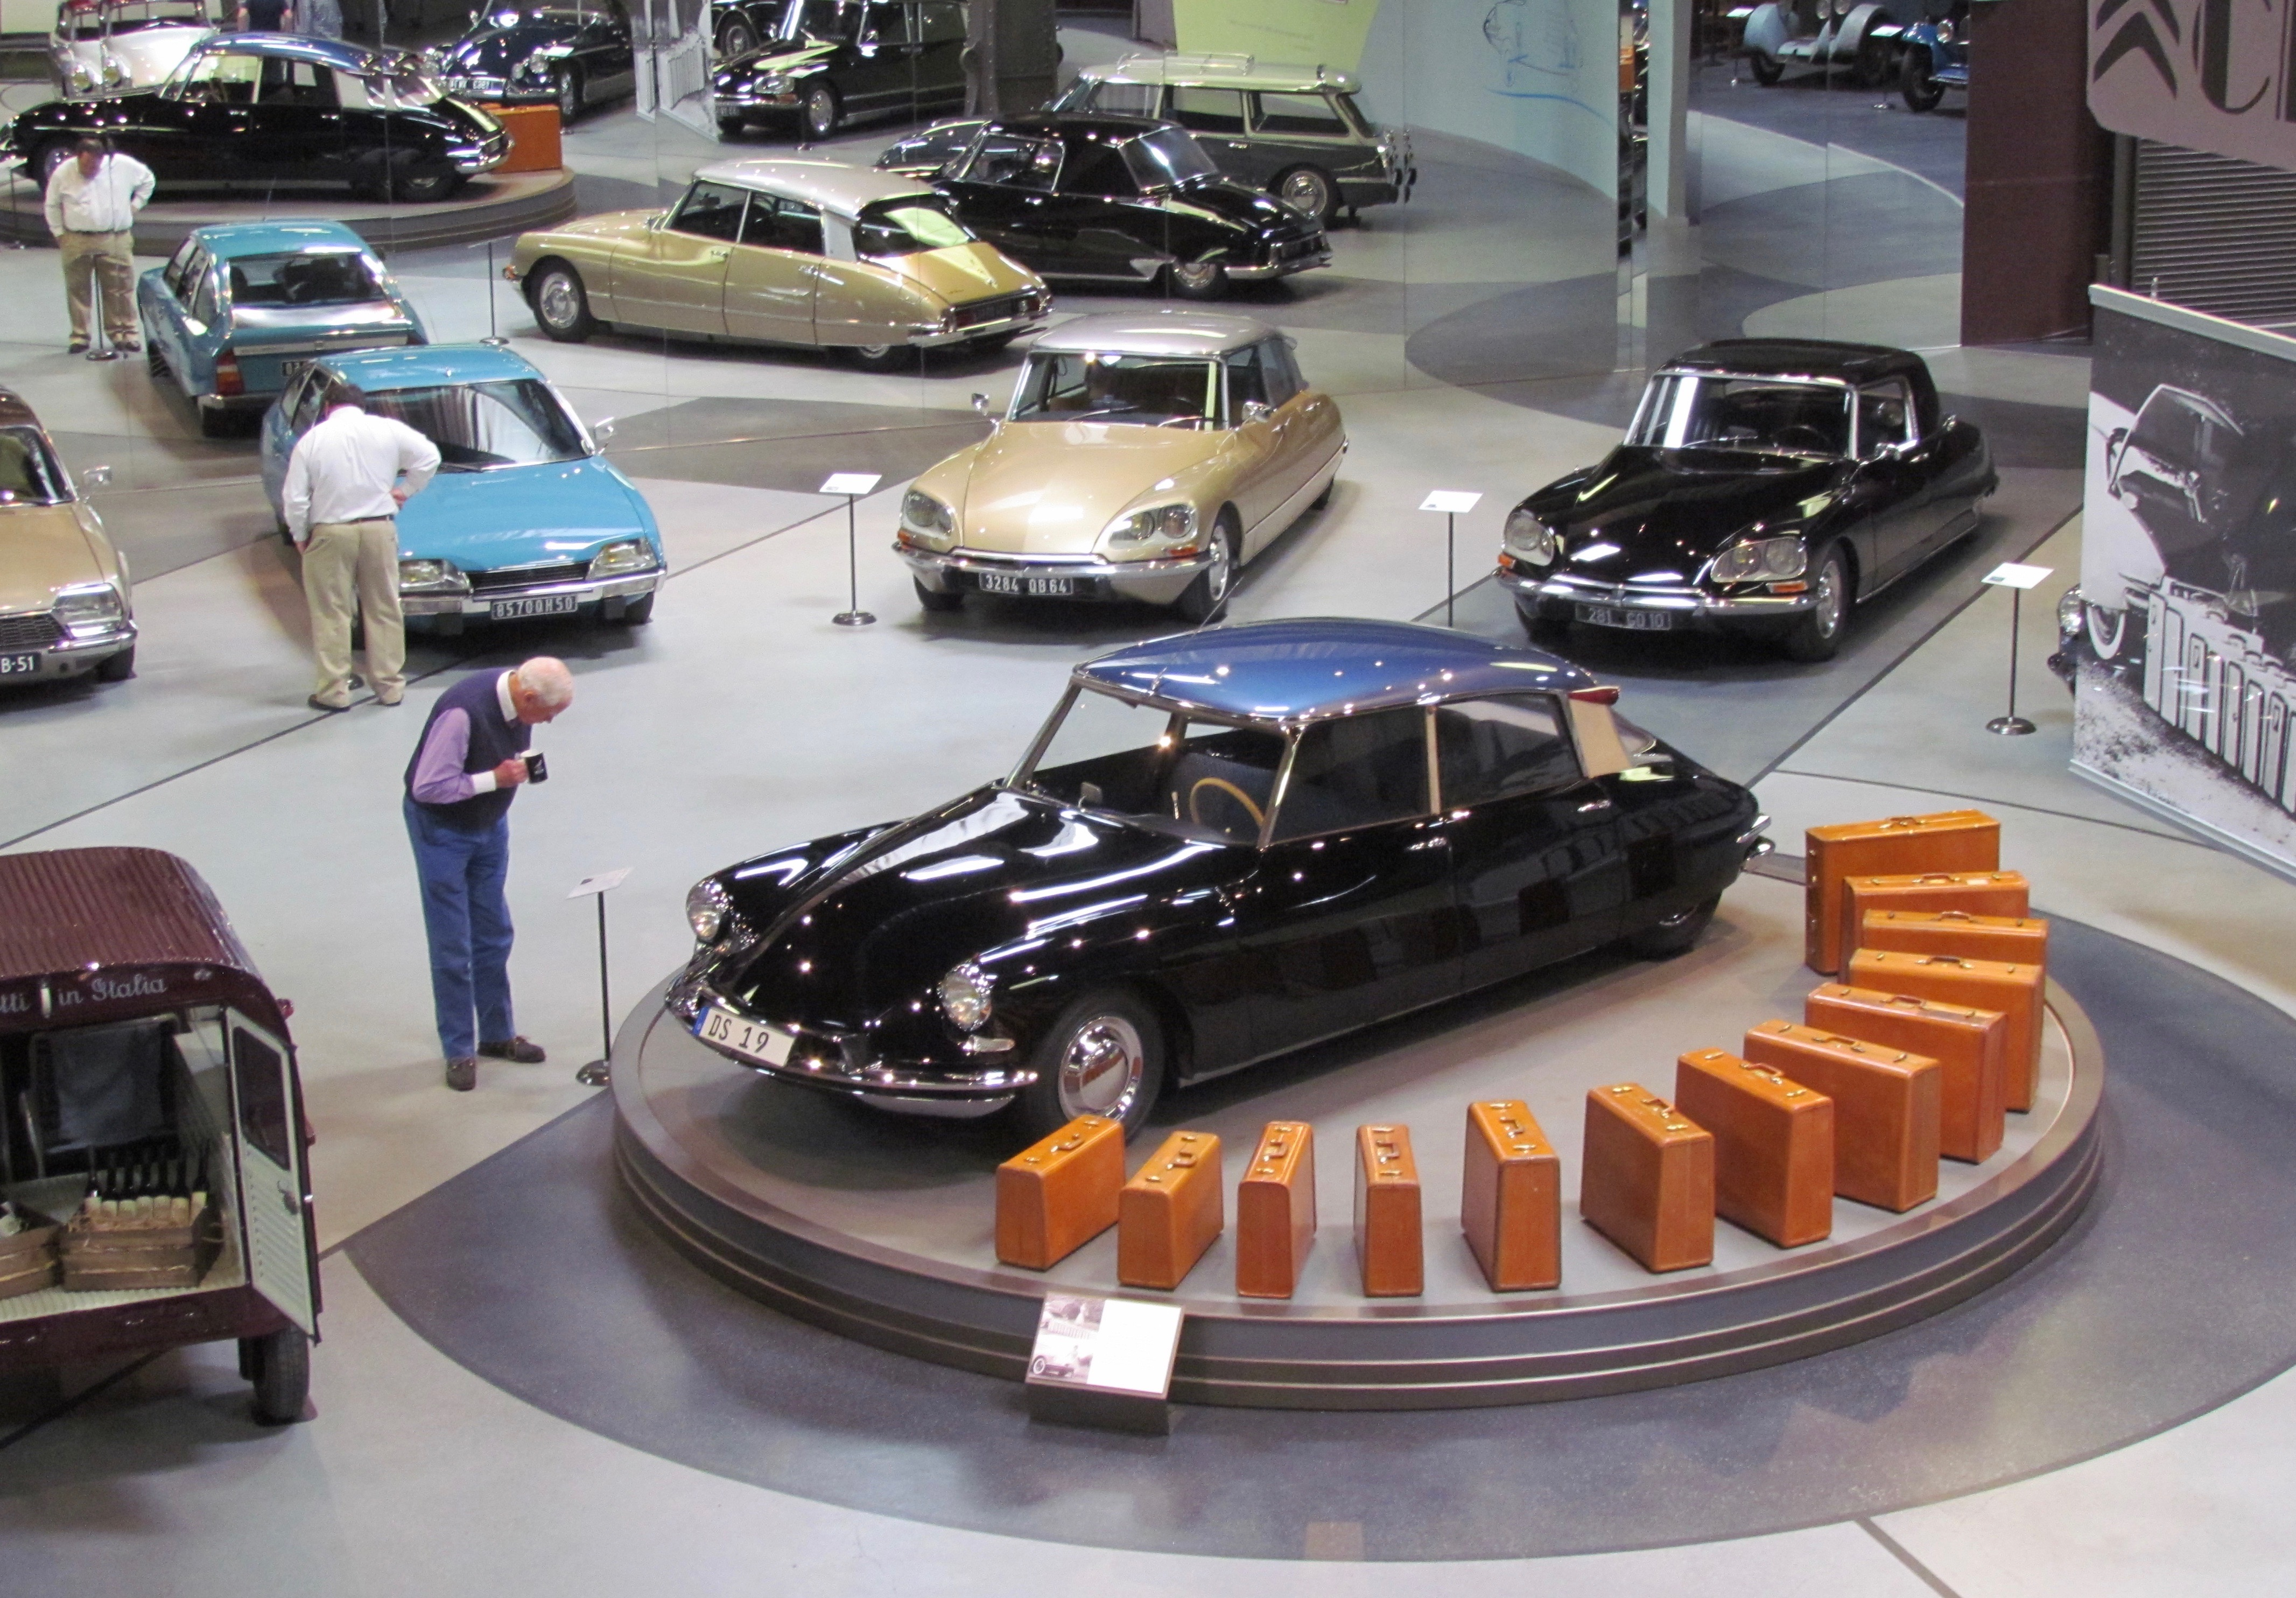 top car collectors, Who are they? Age 72, 96 percent male, average worth of $800 million, ClassicCars.com Journal